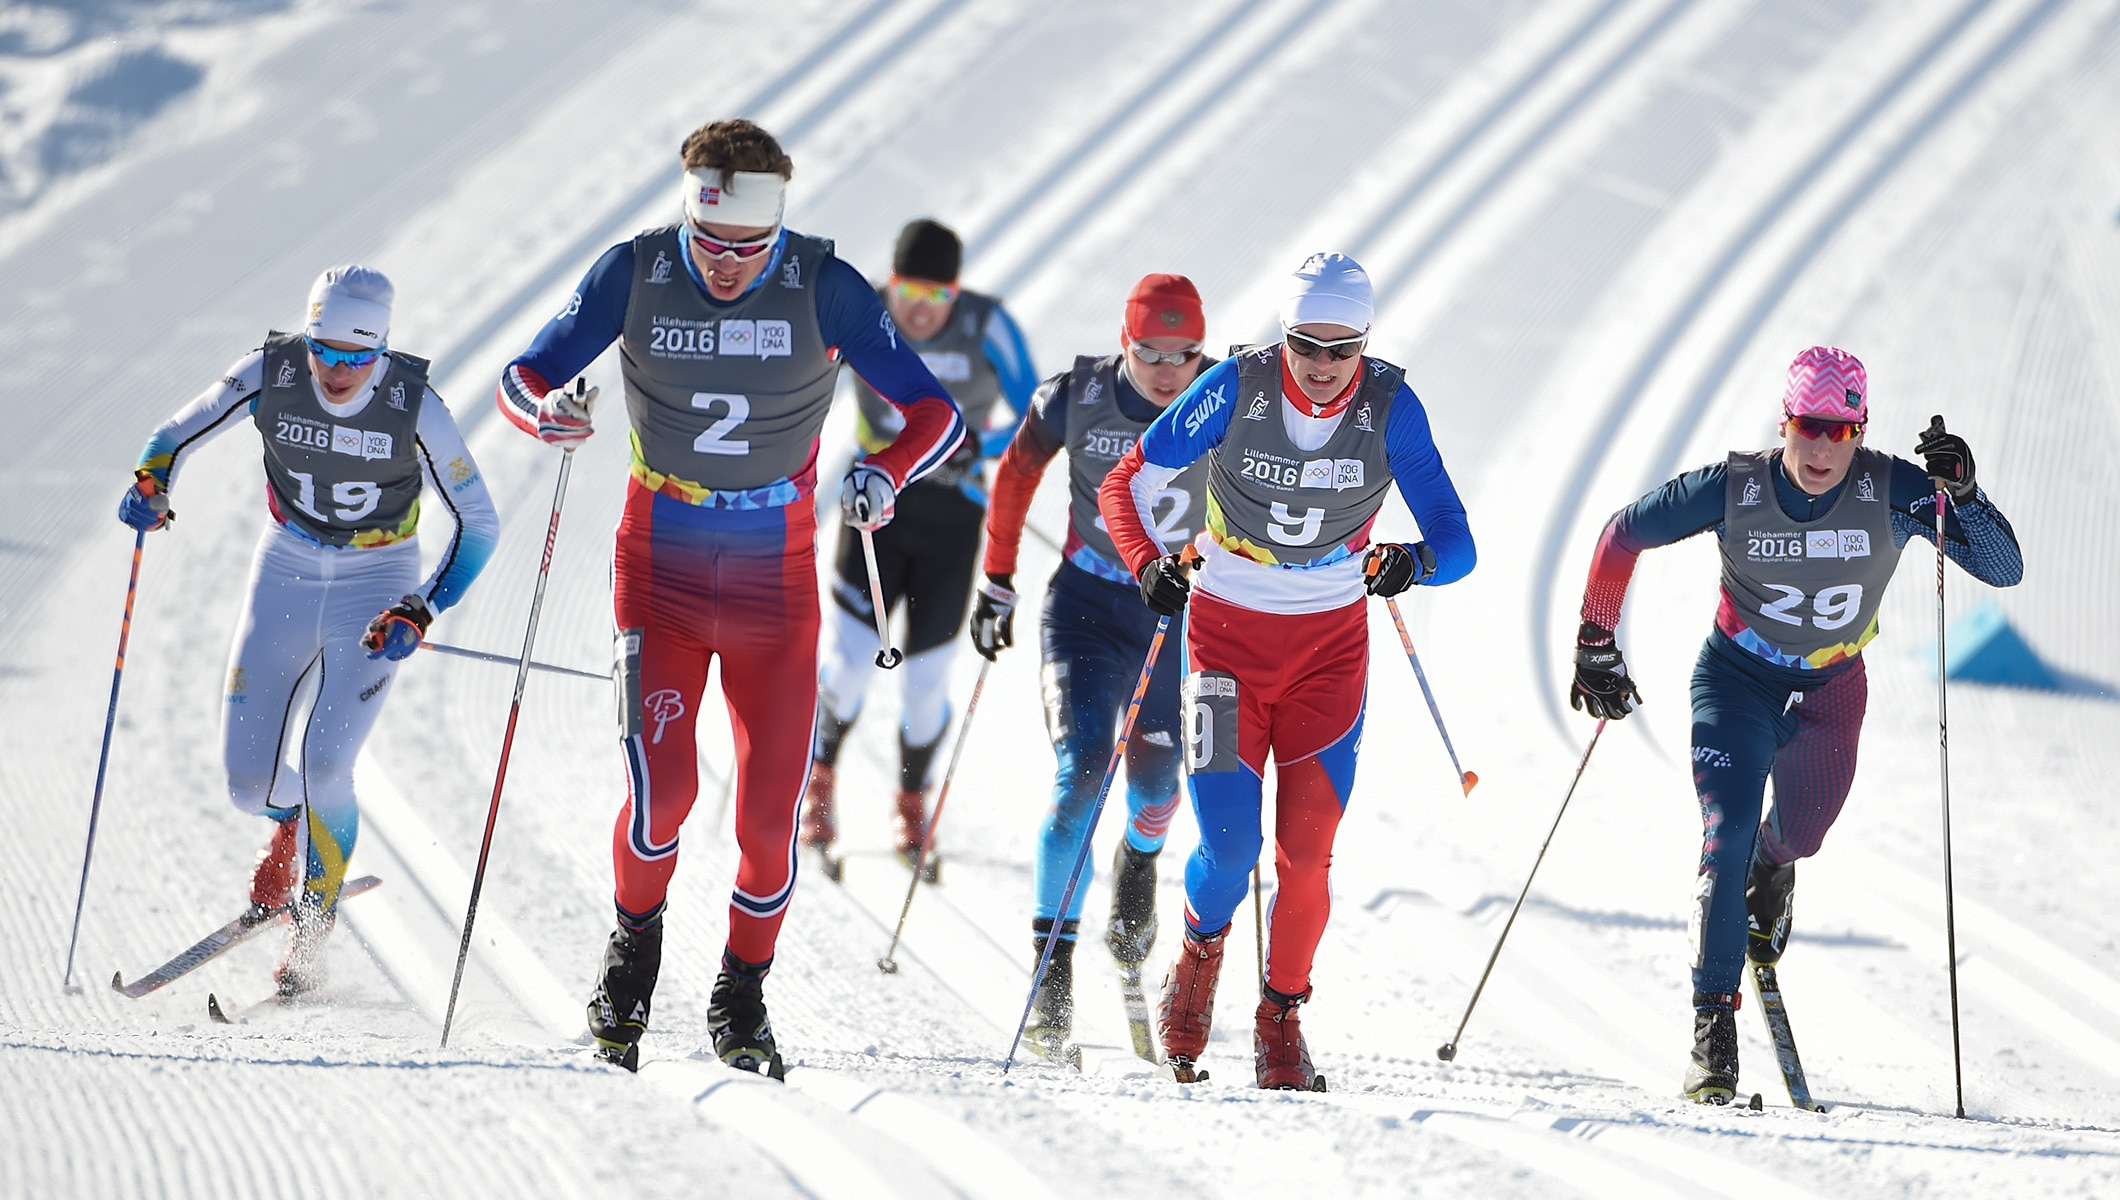 Cross Country Skiing At The 2020 Olympic Winter Games.Cross Country Skiing Winter Olympic Sport